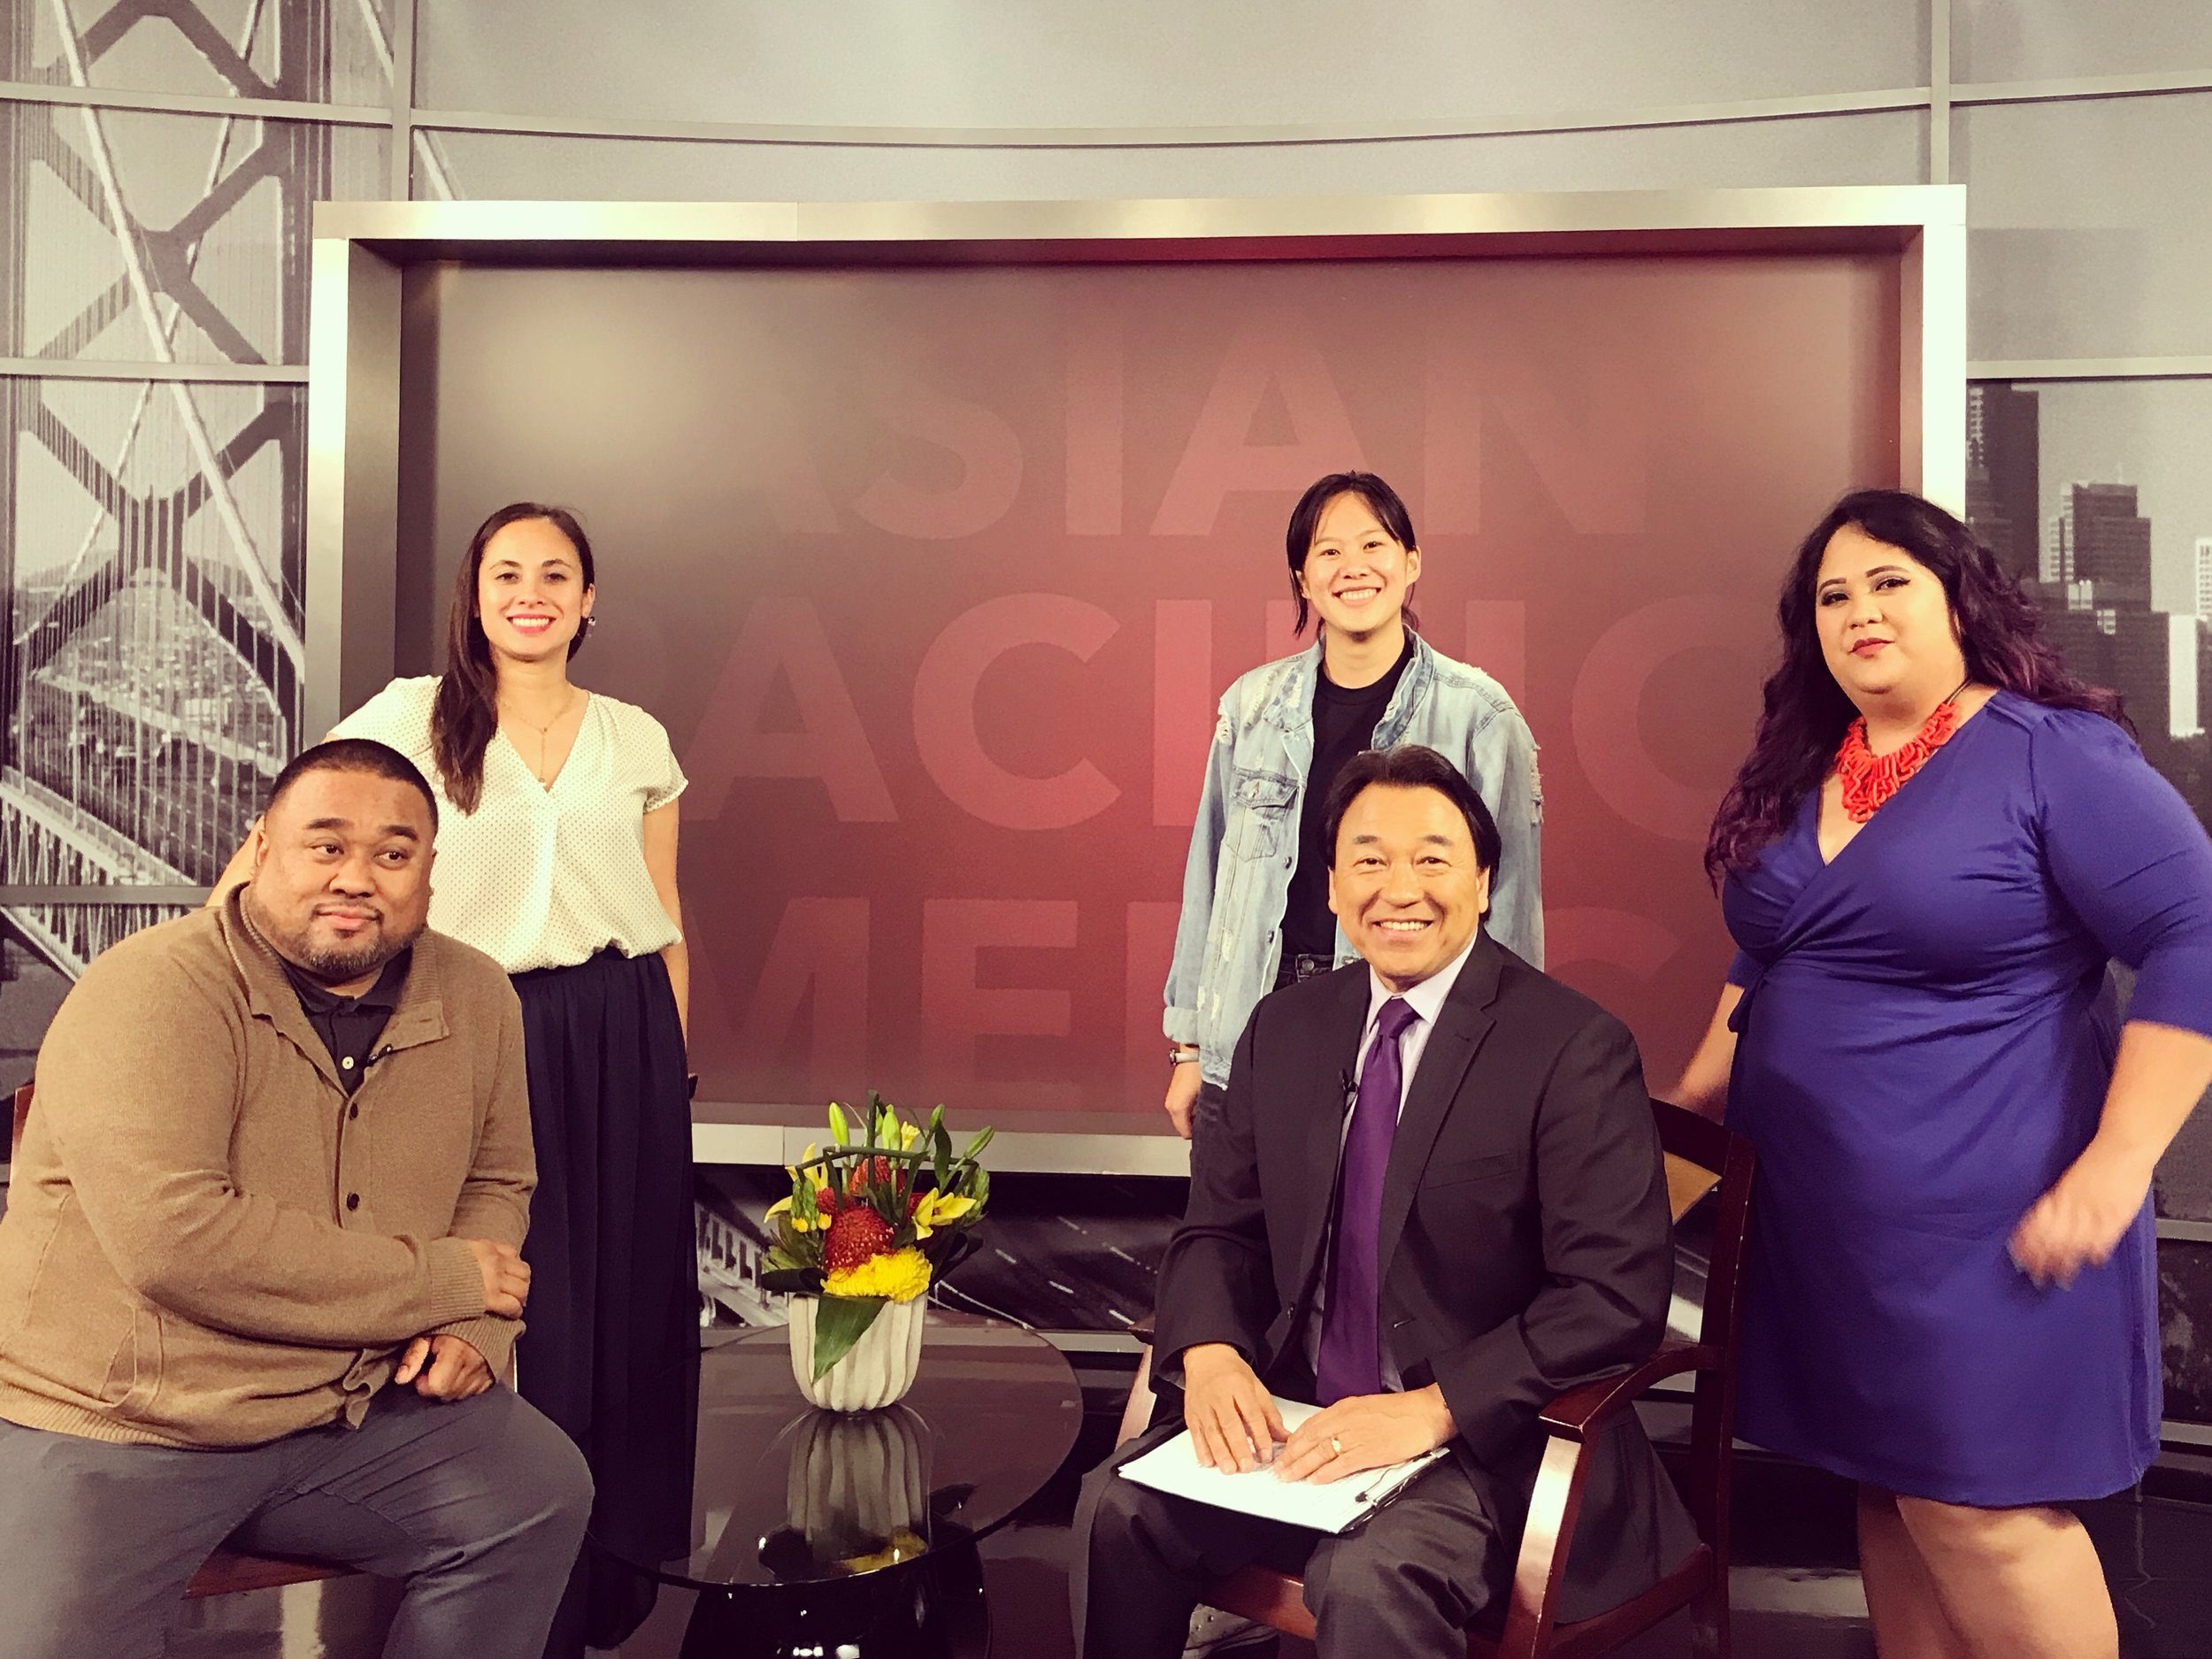 PapaLoDown team (Paloma Concordia, Jenna Peng), Jason Bayani (artist and Program Director of Kearny Street Workshop), Melanie Elvena (API Cultural Center), at the NBC Bay Area studios for the Asian Pacific America show hosted by reporter Robert Handa.